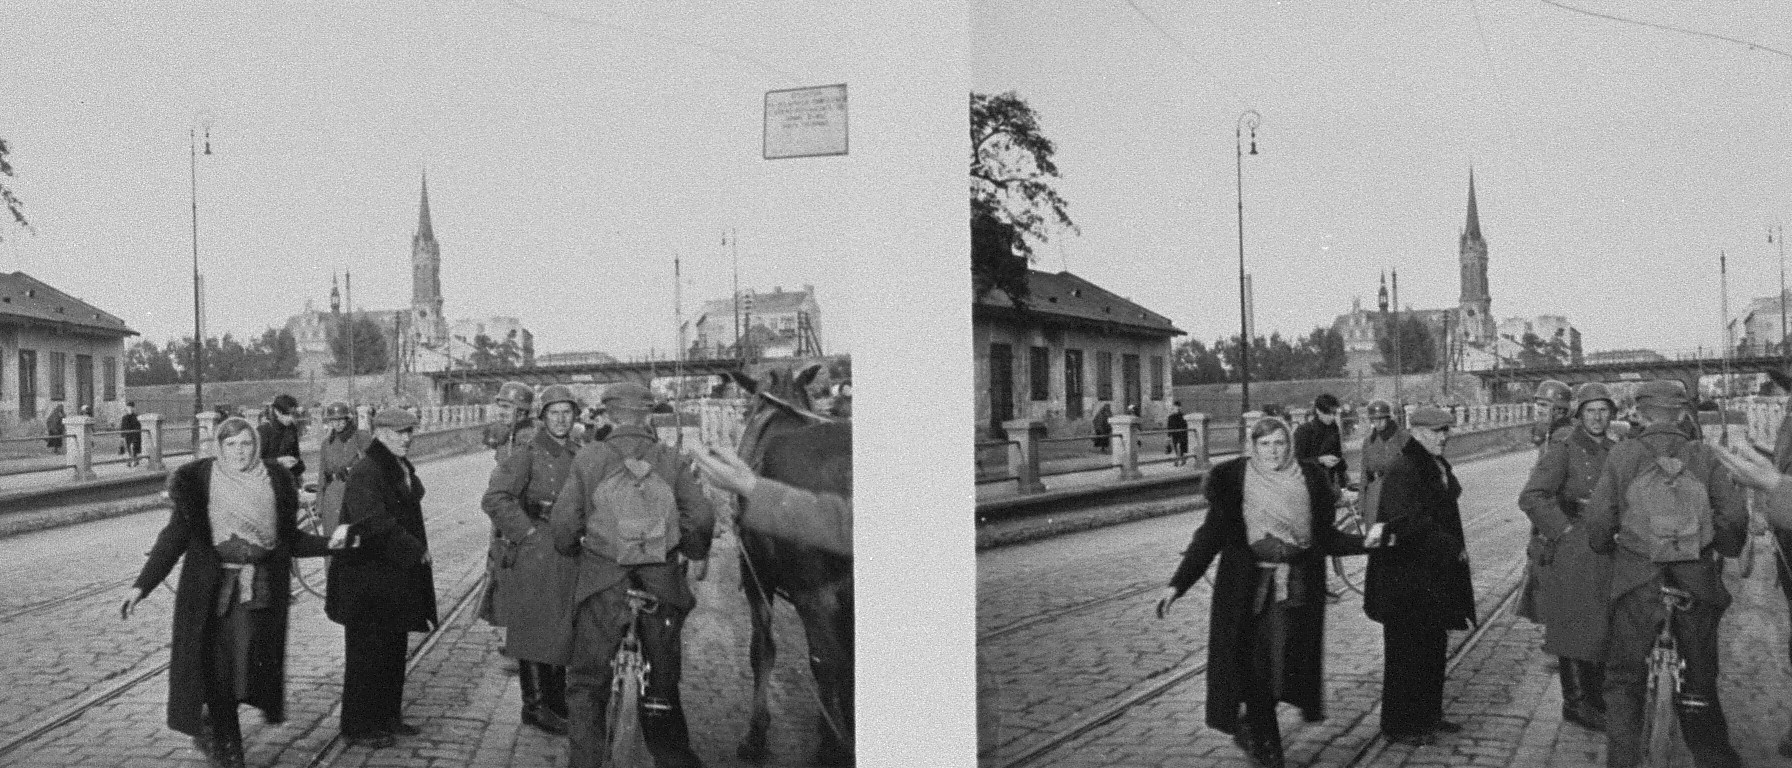 Stereoscopic photograph of Polish civilians passing through a German checkpoint on a Warsaw city street.